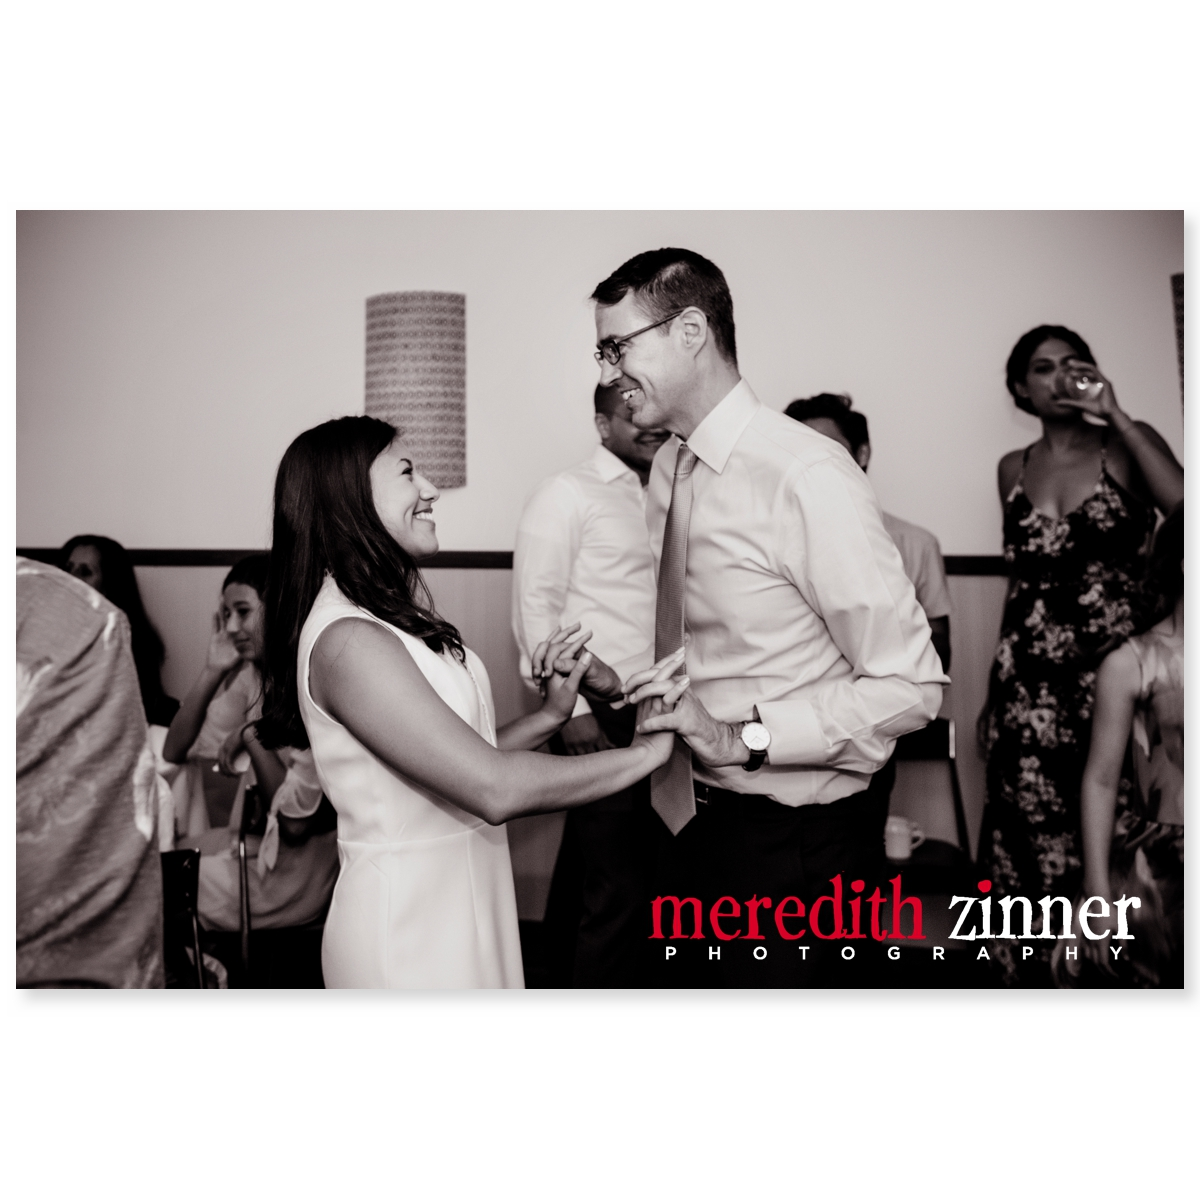 Meredith_Zinner_Photography_StilesCelebration_0391